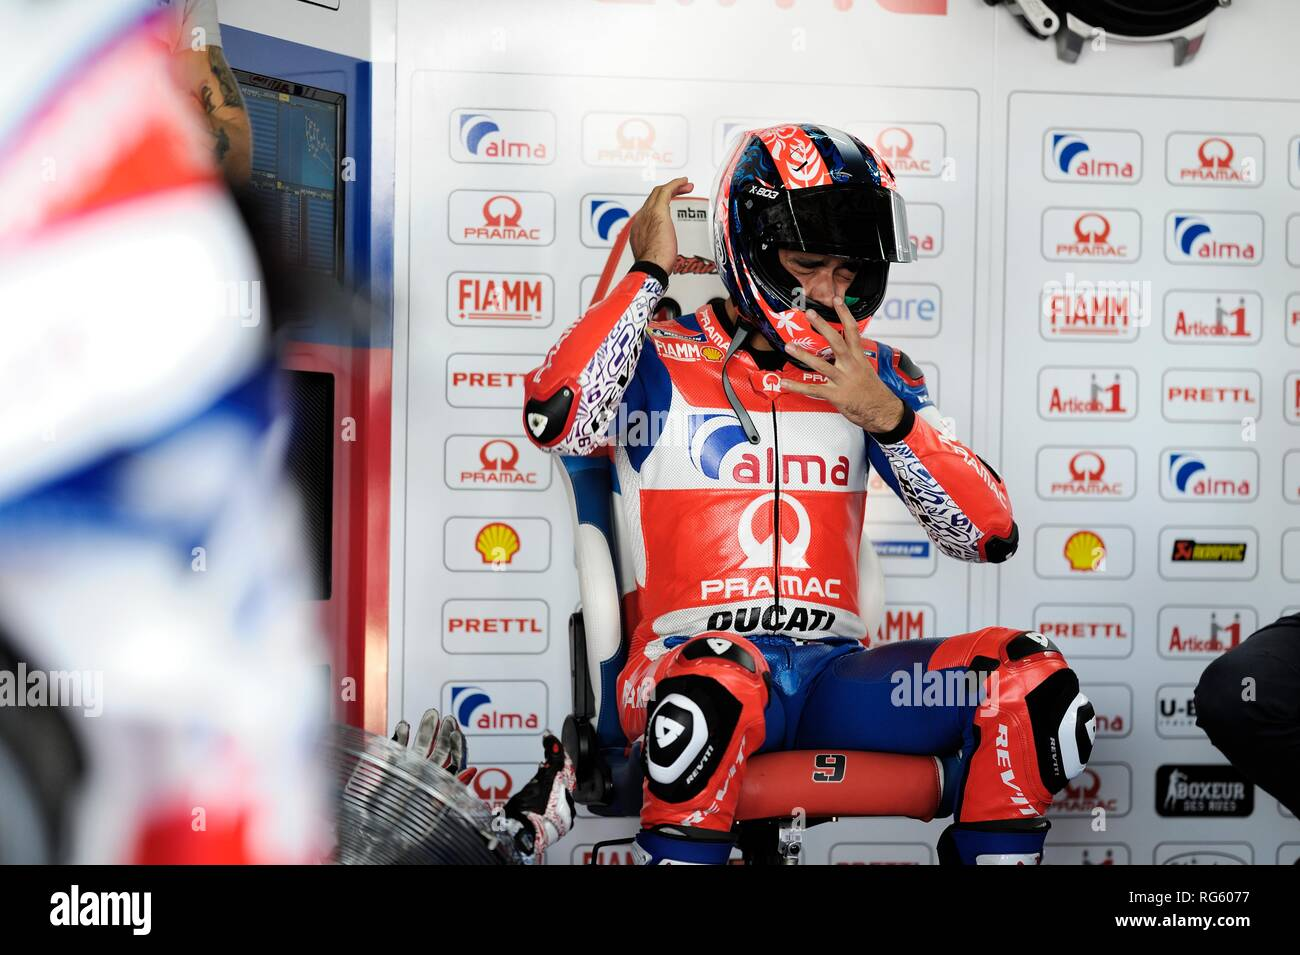 Aragon, Spain. 21st September, 2018. Danilo Petrucci of the Alma Pramac Racing Motogp Team gesticulates in the garage during the free practice 2  Cred - Stock Image